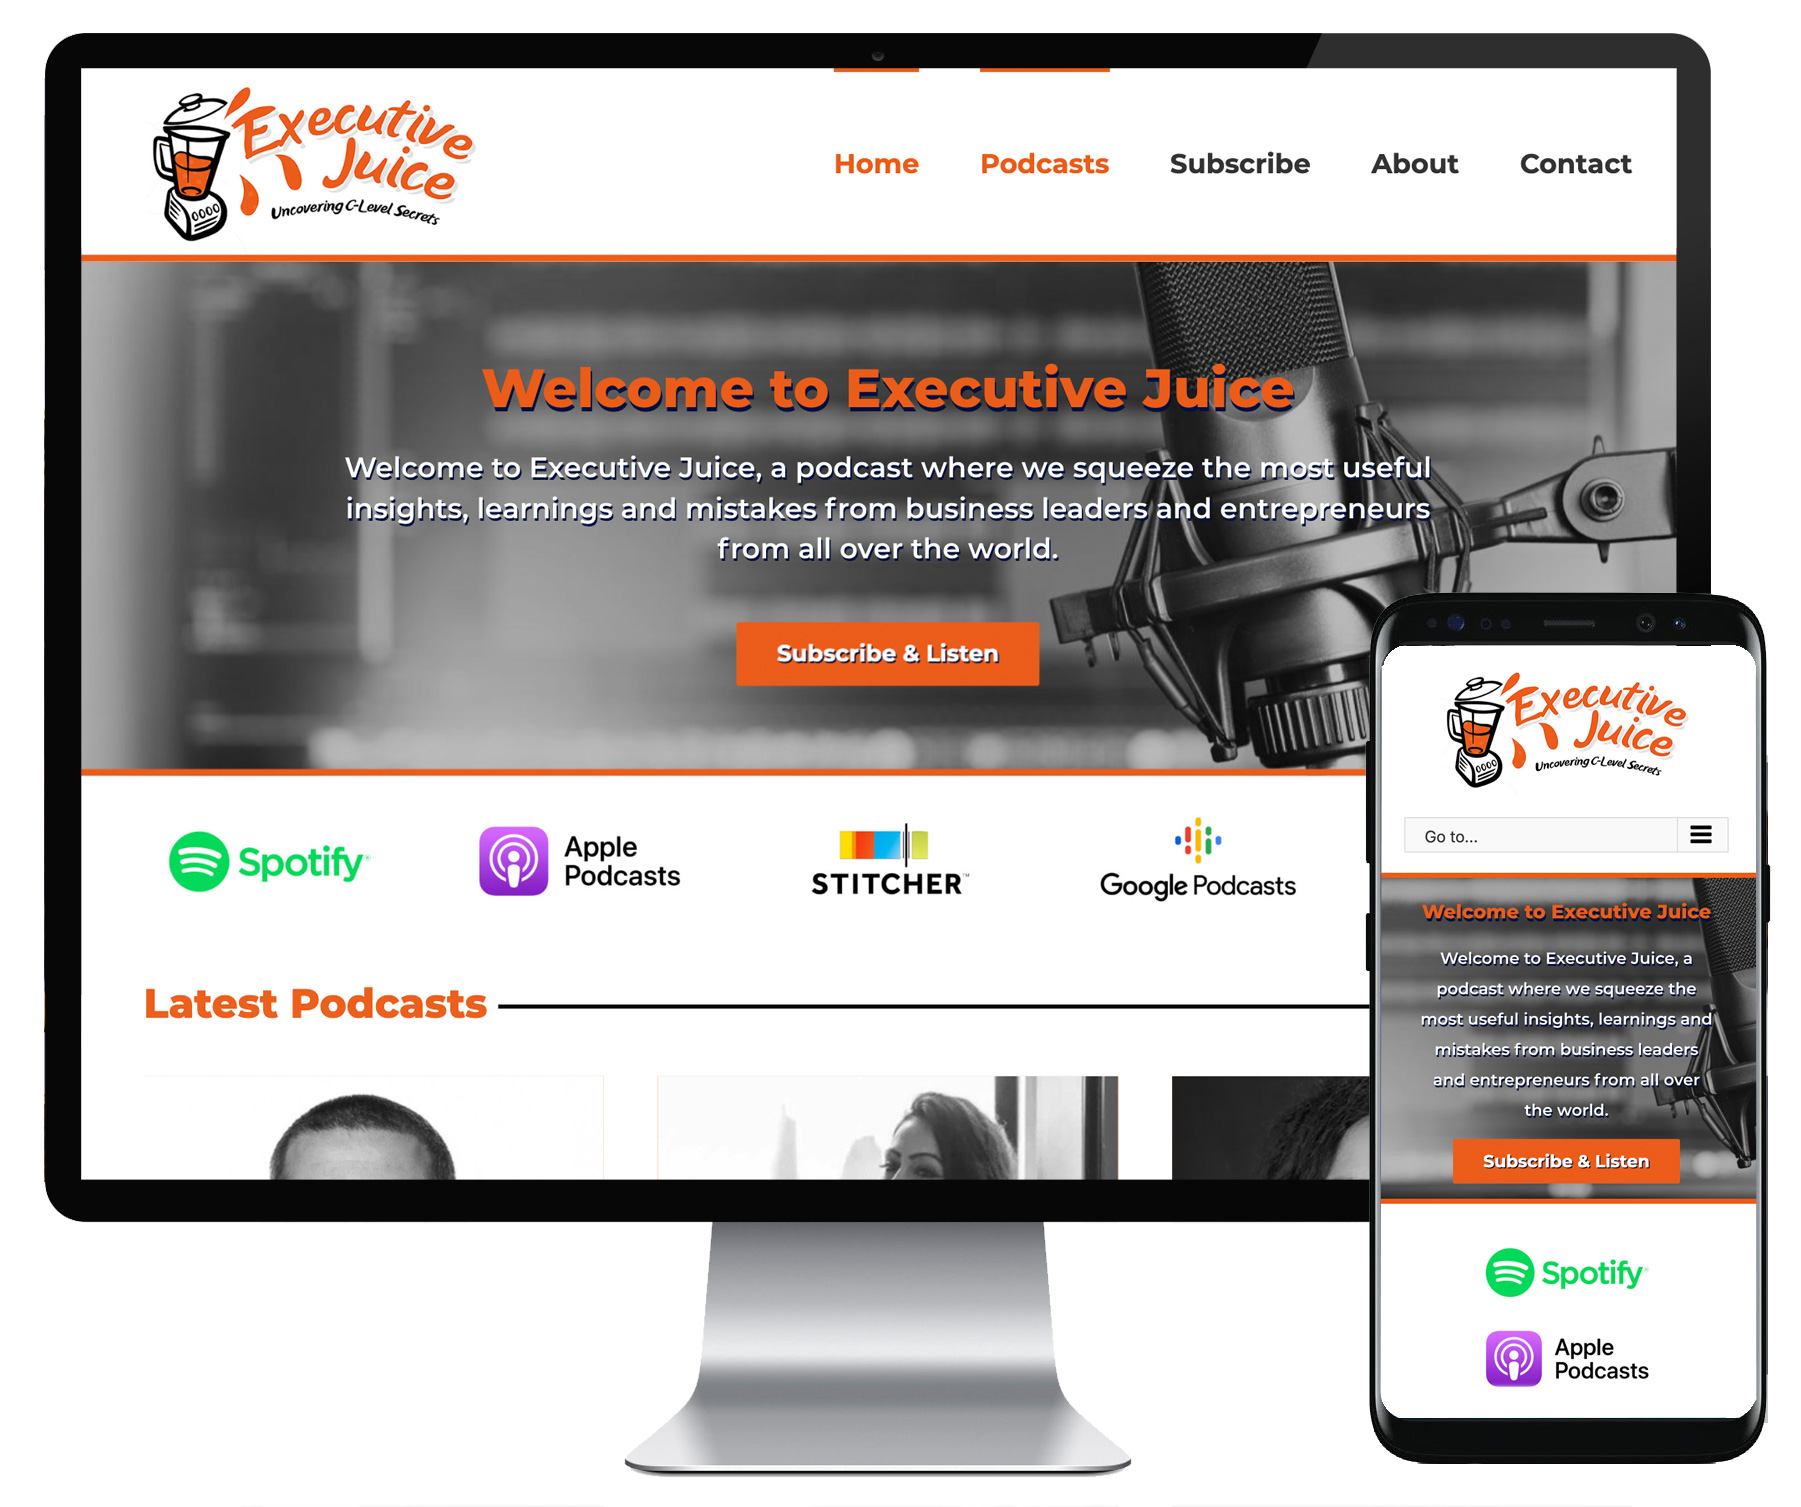 Executive Juice website